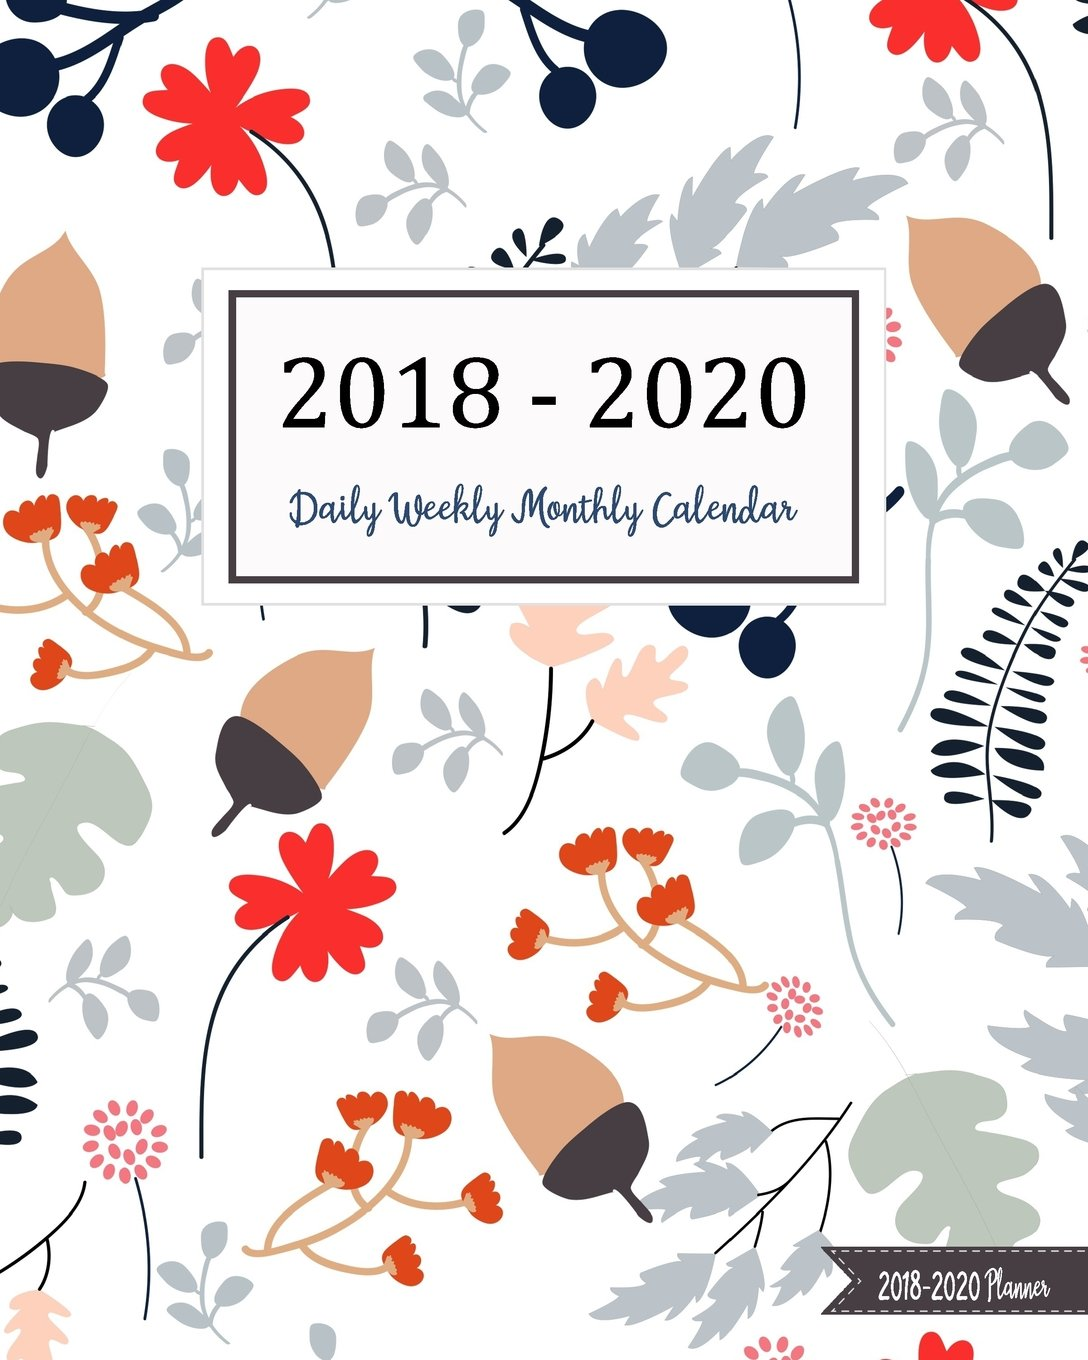 December 2020 And January 2018 Calendar 2018 2020 Planner: Three Years   (1095 Day) Daily Weekly Monthly